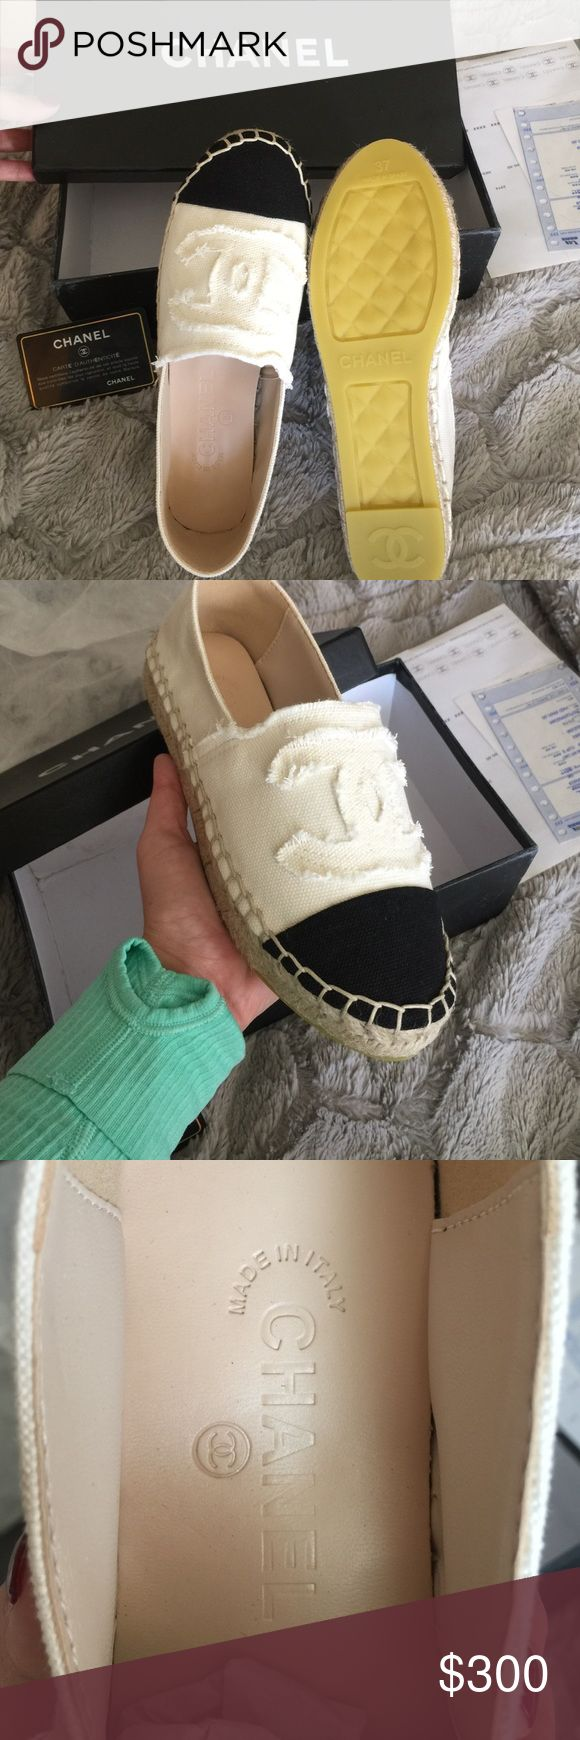 Chanel espadrilles 6 women's For sale are Chanel espadrilles brand new never worn. I can't guarantee authenticity I bought from an estate sale and they didn't fit. So bummed I loved them a lot. Does come with the card and the box, very comfortable, never worn. Ivory and black! Says 37 on the bottom but I'm a 6.5 and they are a tiny bit too small so I'm going to say a 6 CHANEL Shoes Espadrilles